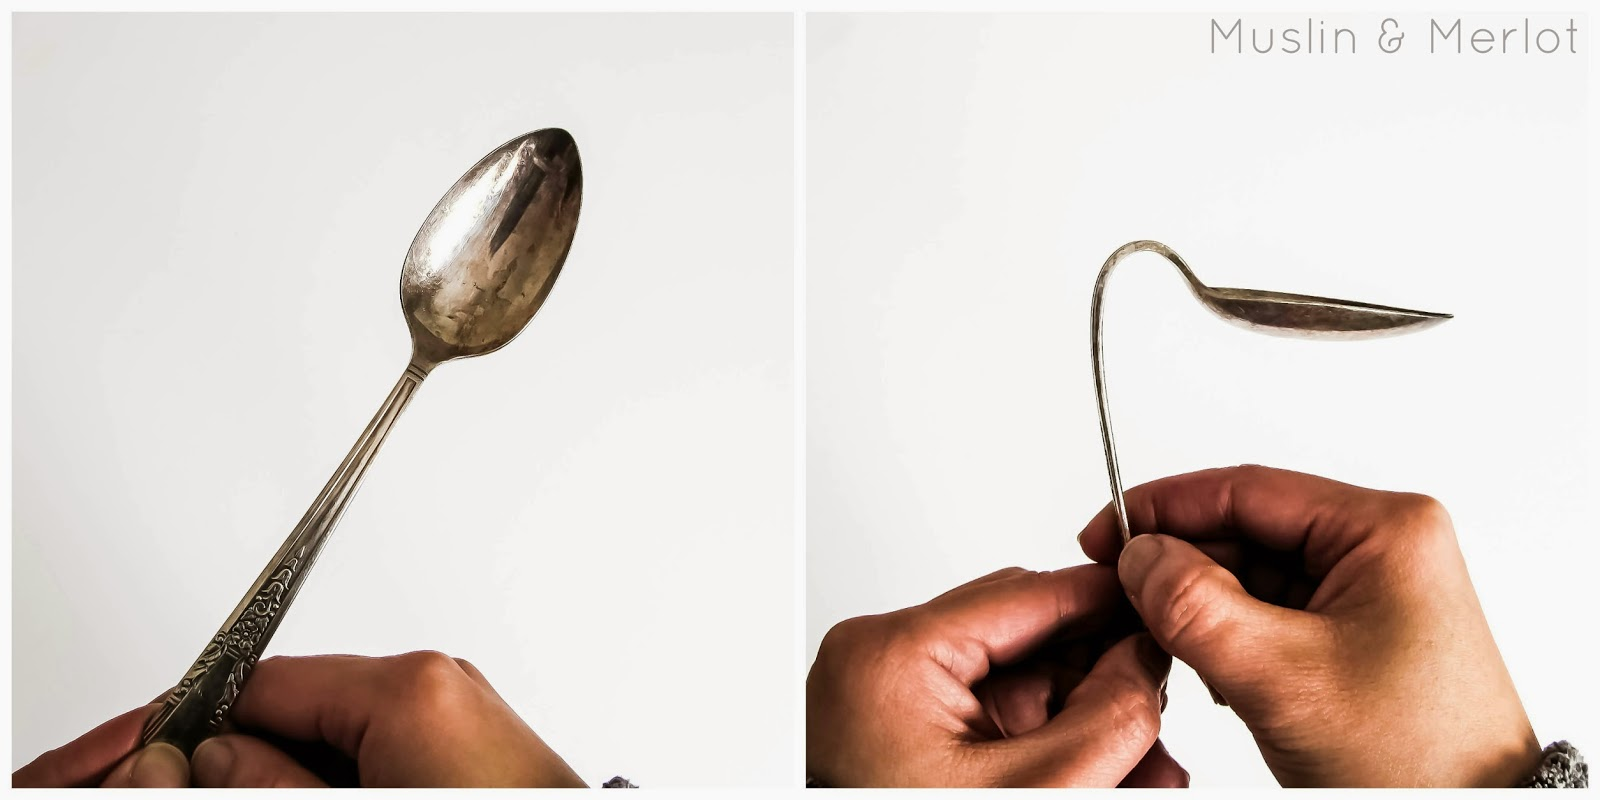 Upcycled Spoon Recipe Holders by Muslin & Merlot